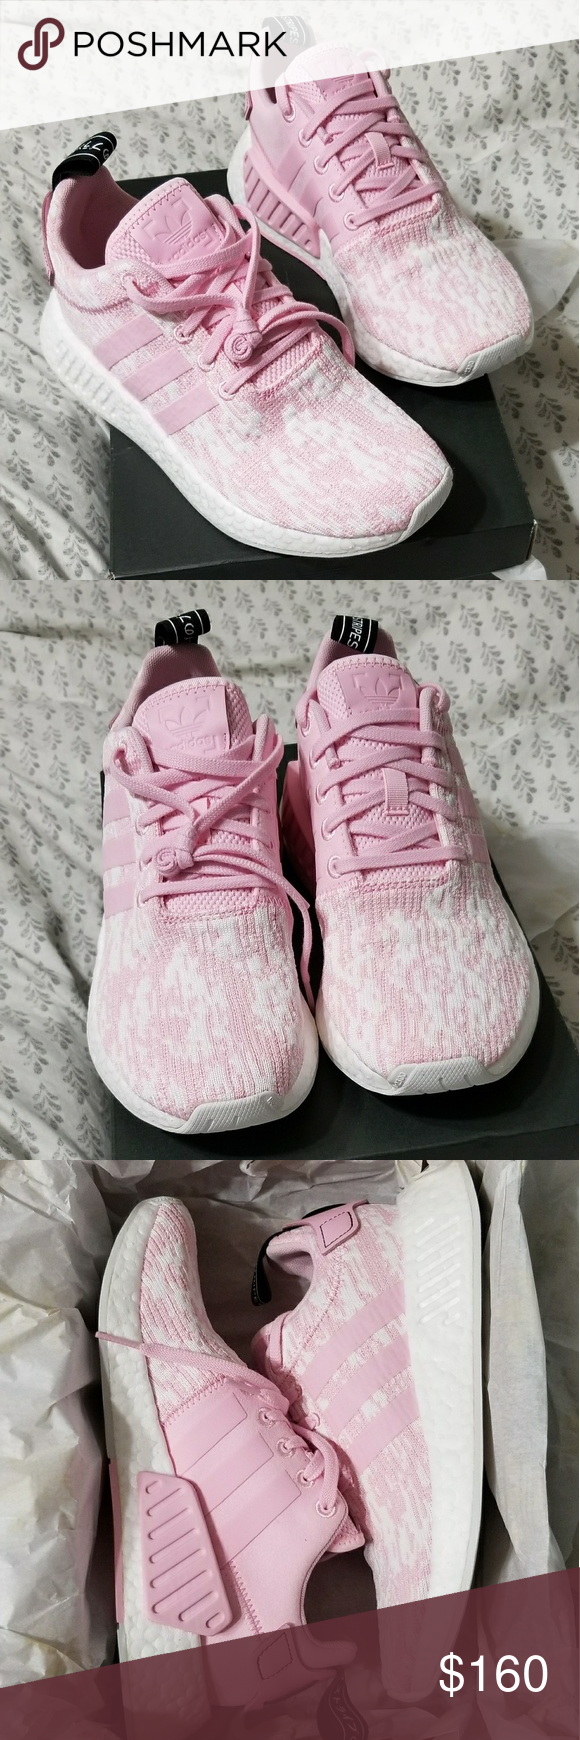 8bca8dc46 Adidas NMD R2 New in original box Adidas nmd r2 women s size 7. Wonder pink  with black pull tab.  Adidas  originals  nmd  fashion  running  shoes  pink  ...